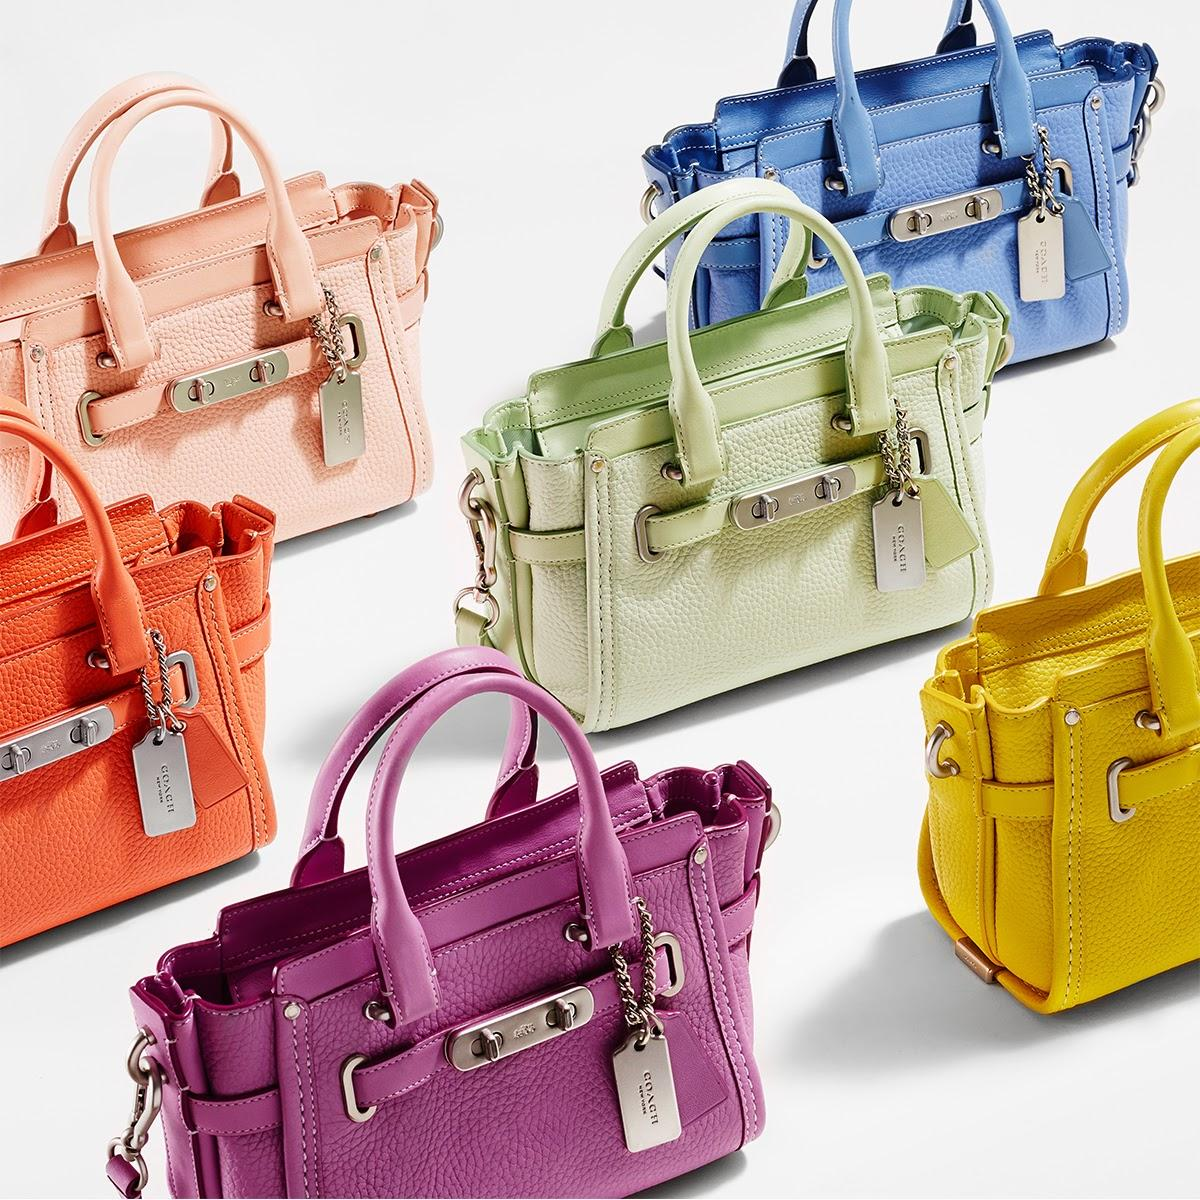 Up to 40% Off Select Swagger Handbags @ Coach